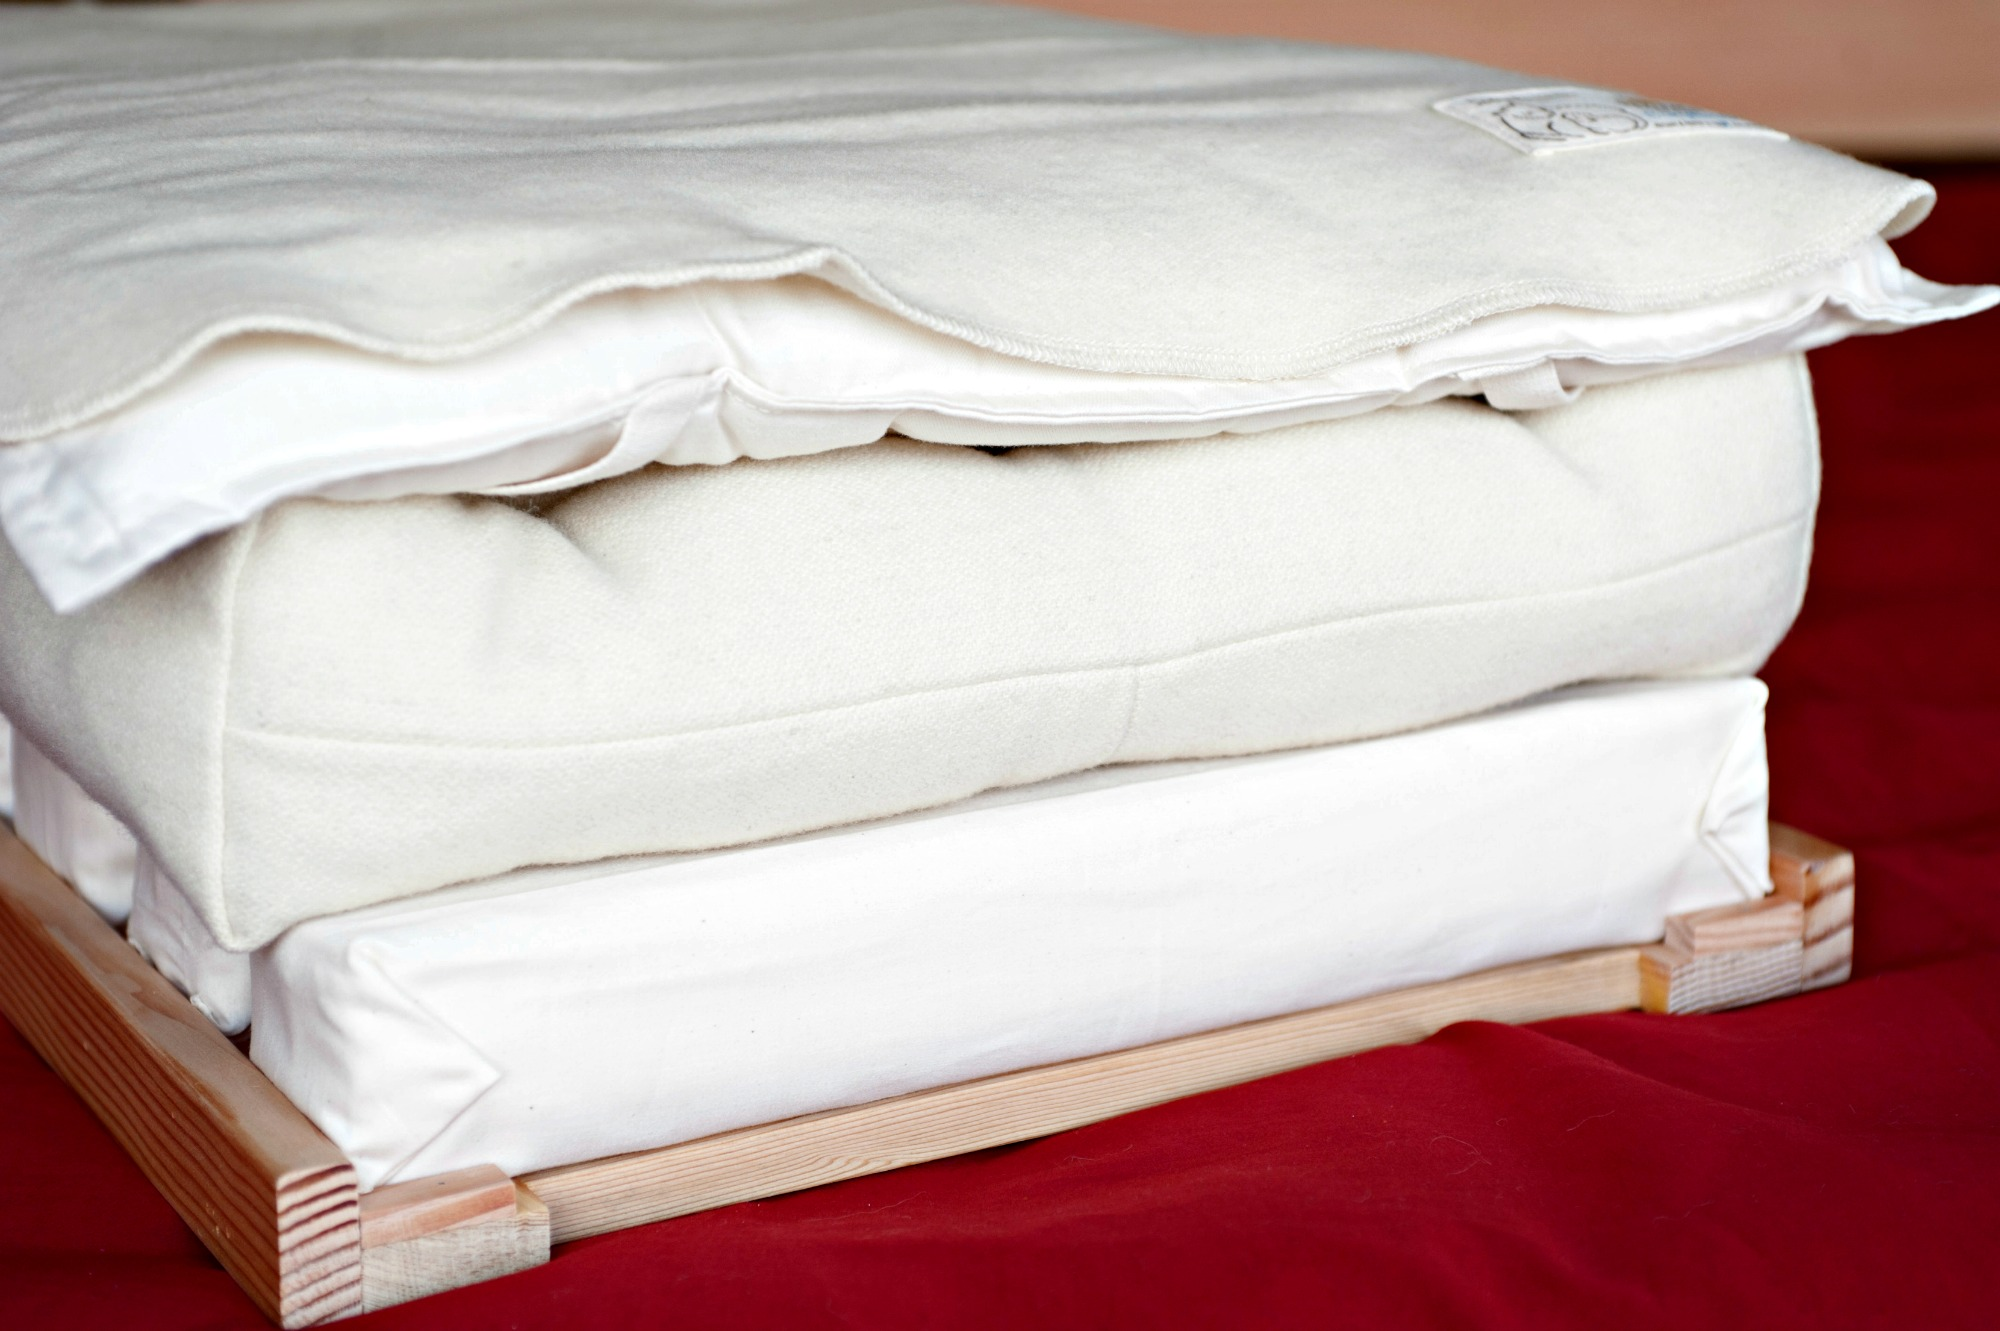 pad page cover washable wmp product index category cp pure mattress sb id wool name by comfort